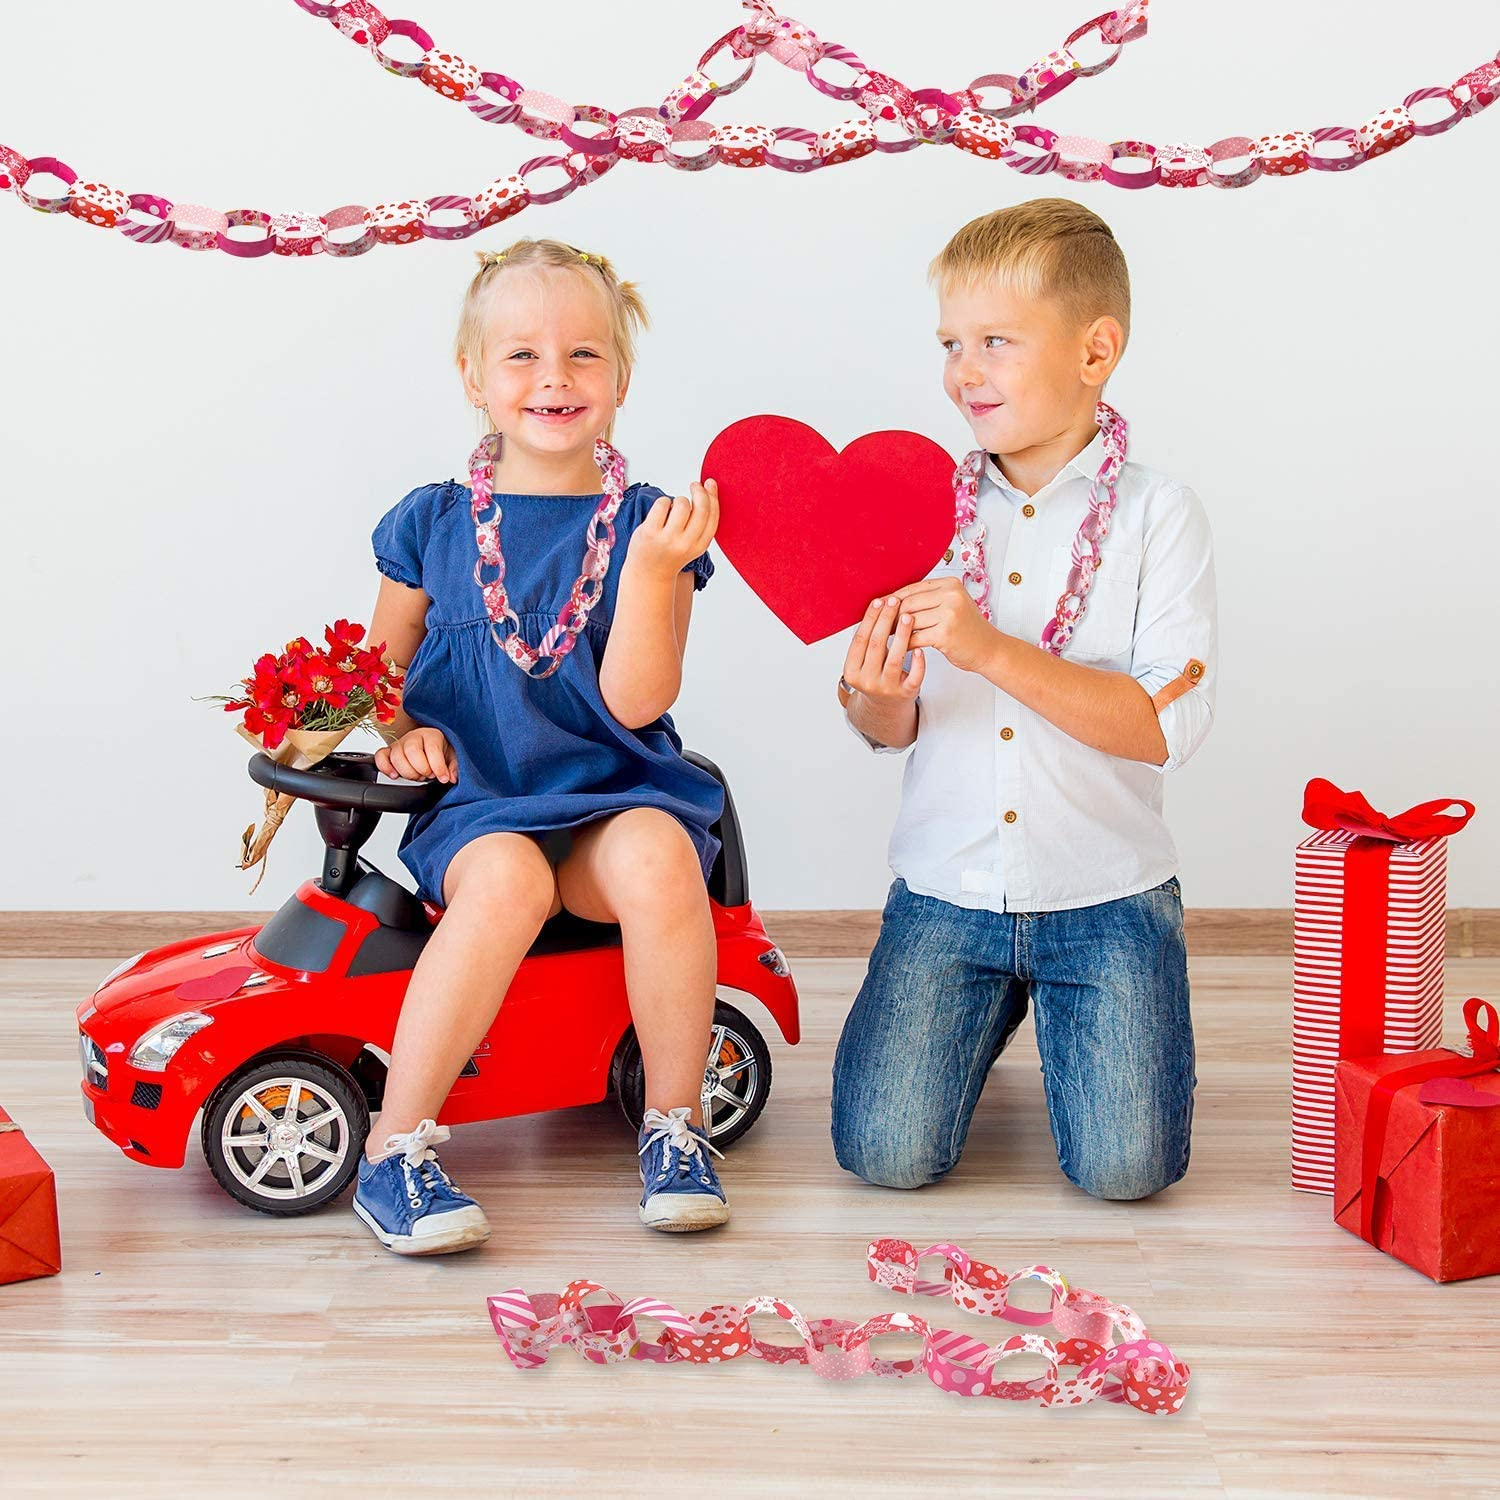 KUUQA Valentine Paper Chains Valentines Day Craft Paper Chains for Wedding and Festive Party Decoration